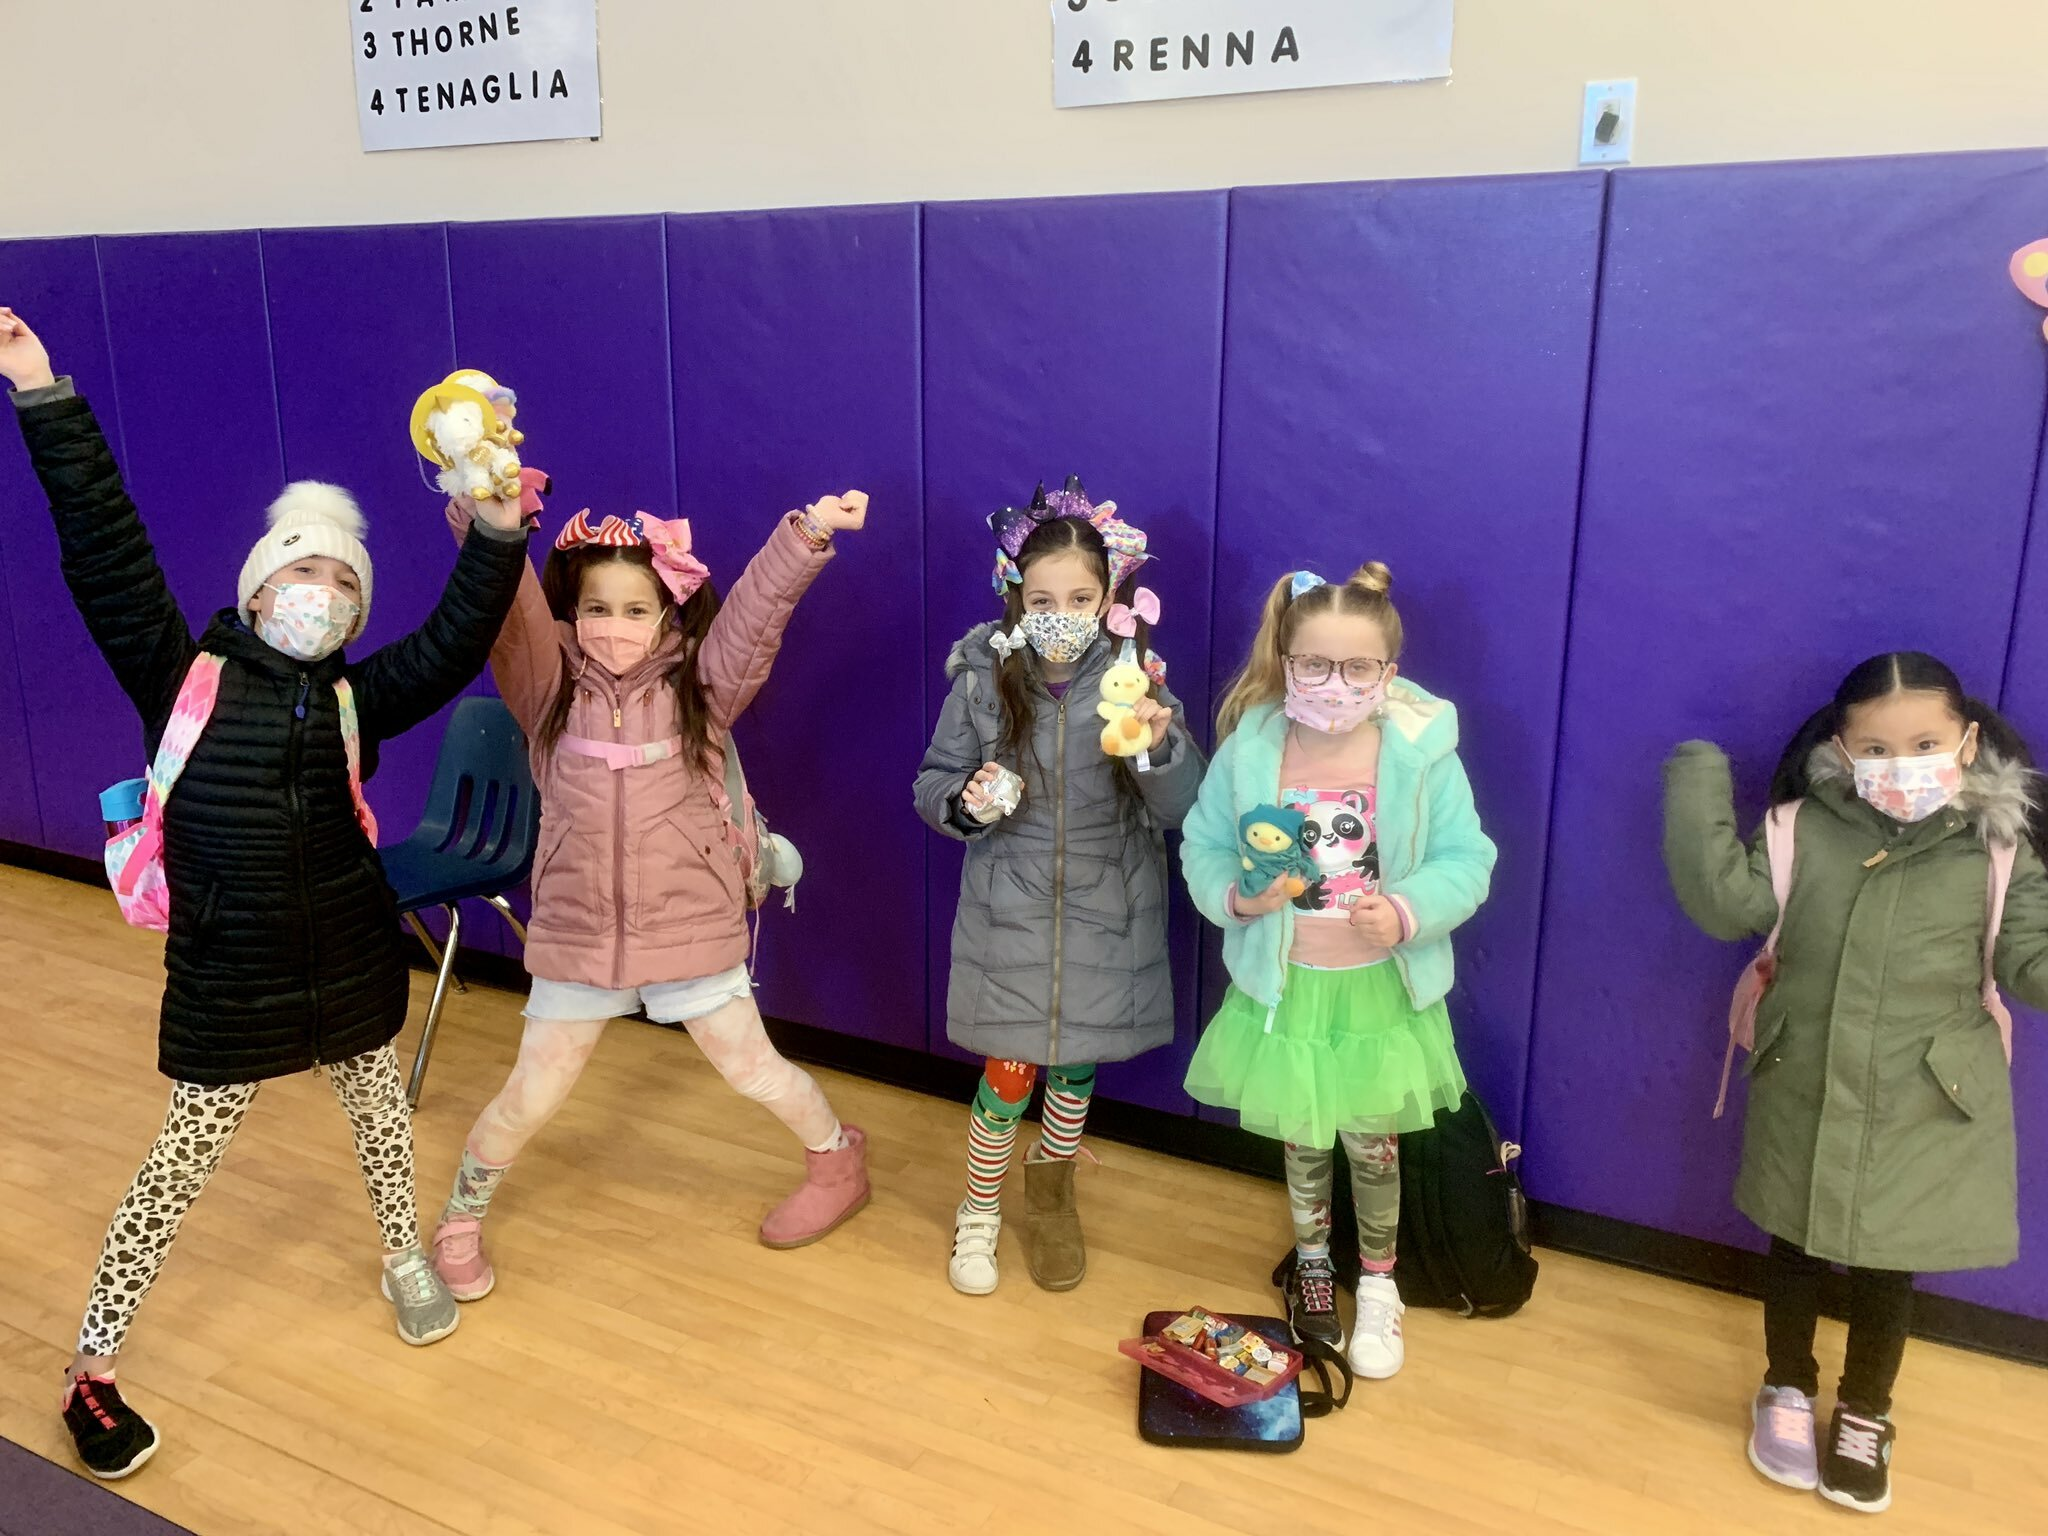 Hampton Bays Elementary School recently celebrated Read Across America Week with a number of fun and engaging activities. Students got into the spirit with themed apparel, including crazy sock and pajama days, and were treated to mystery reader sessions each day.